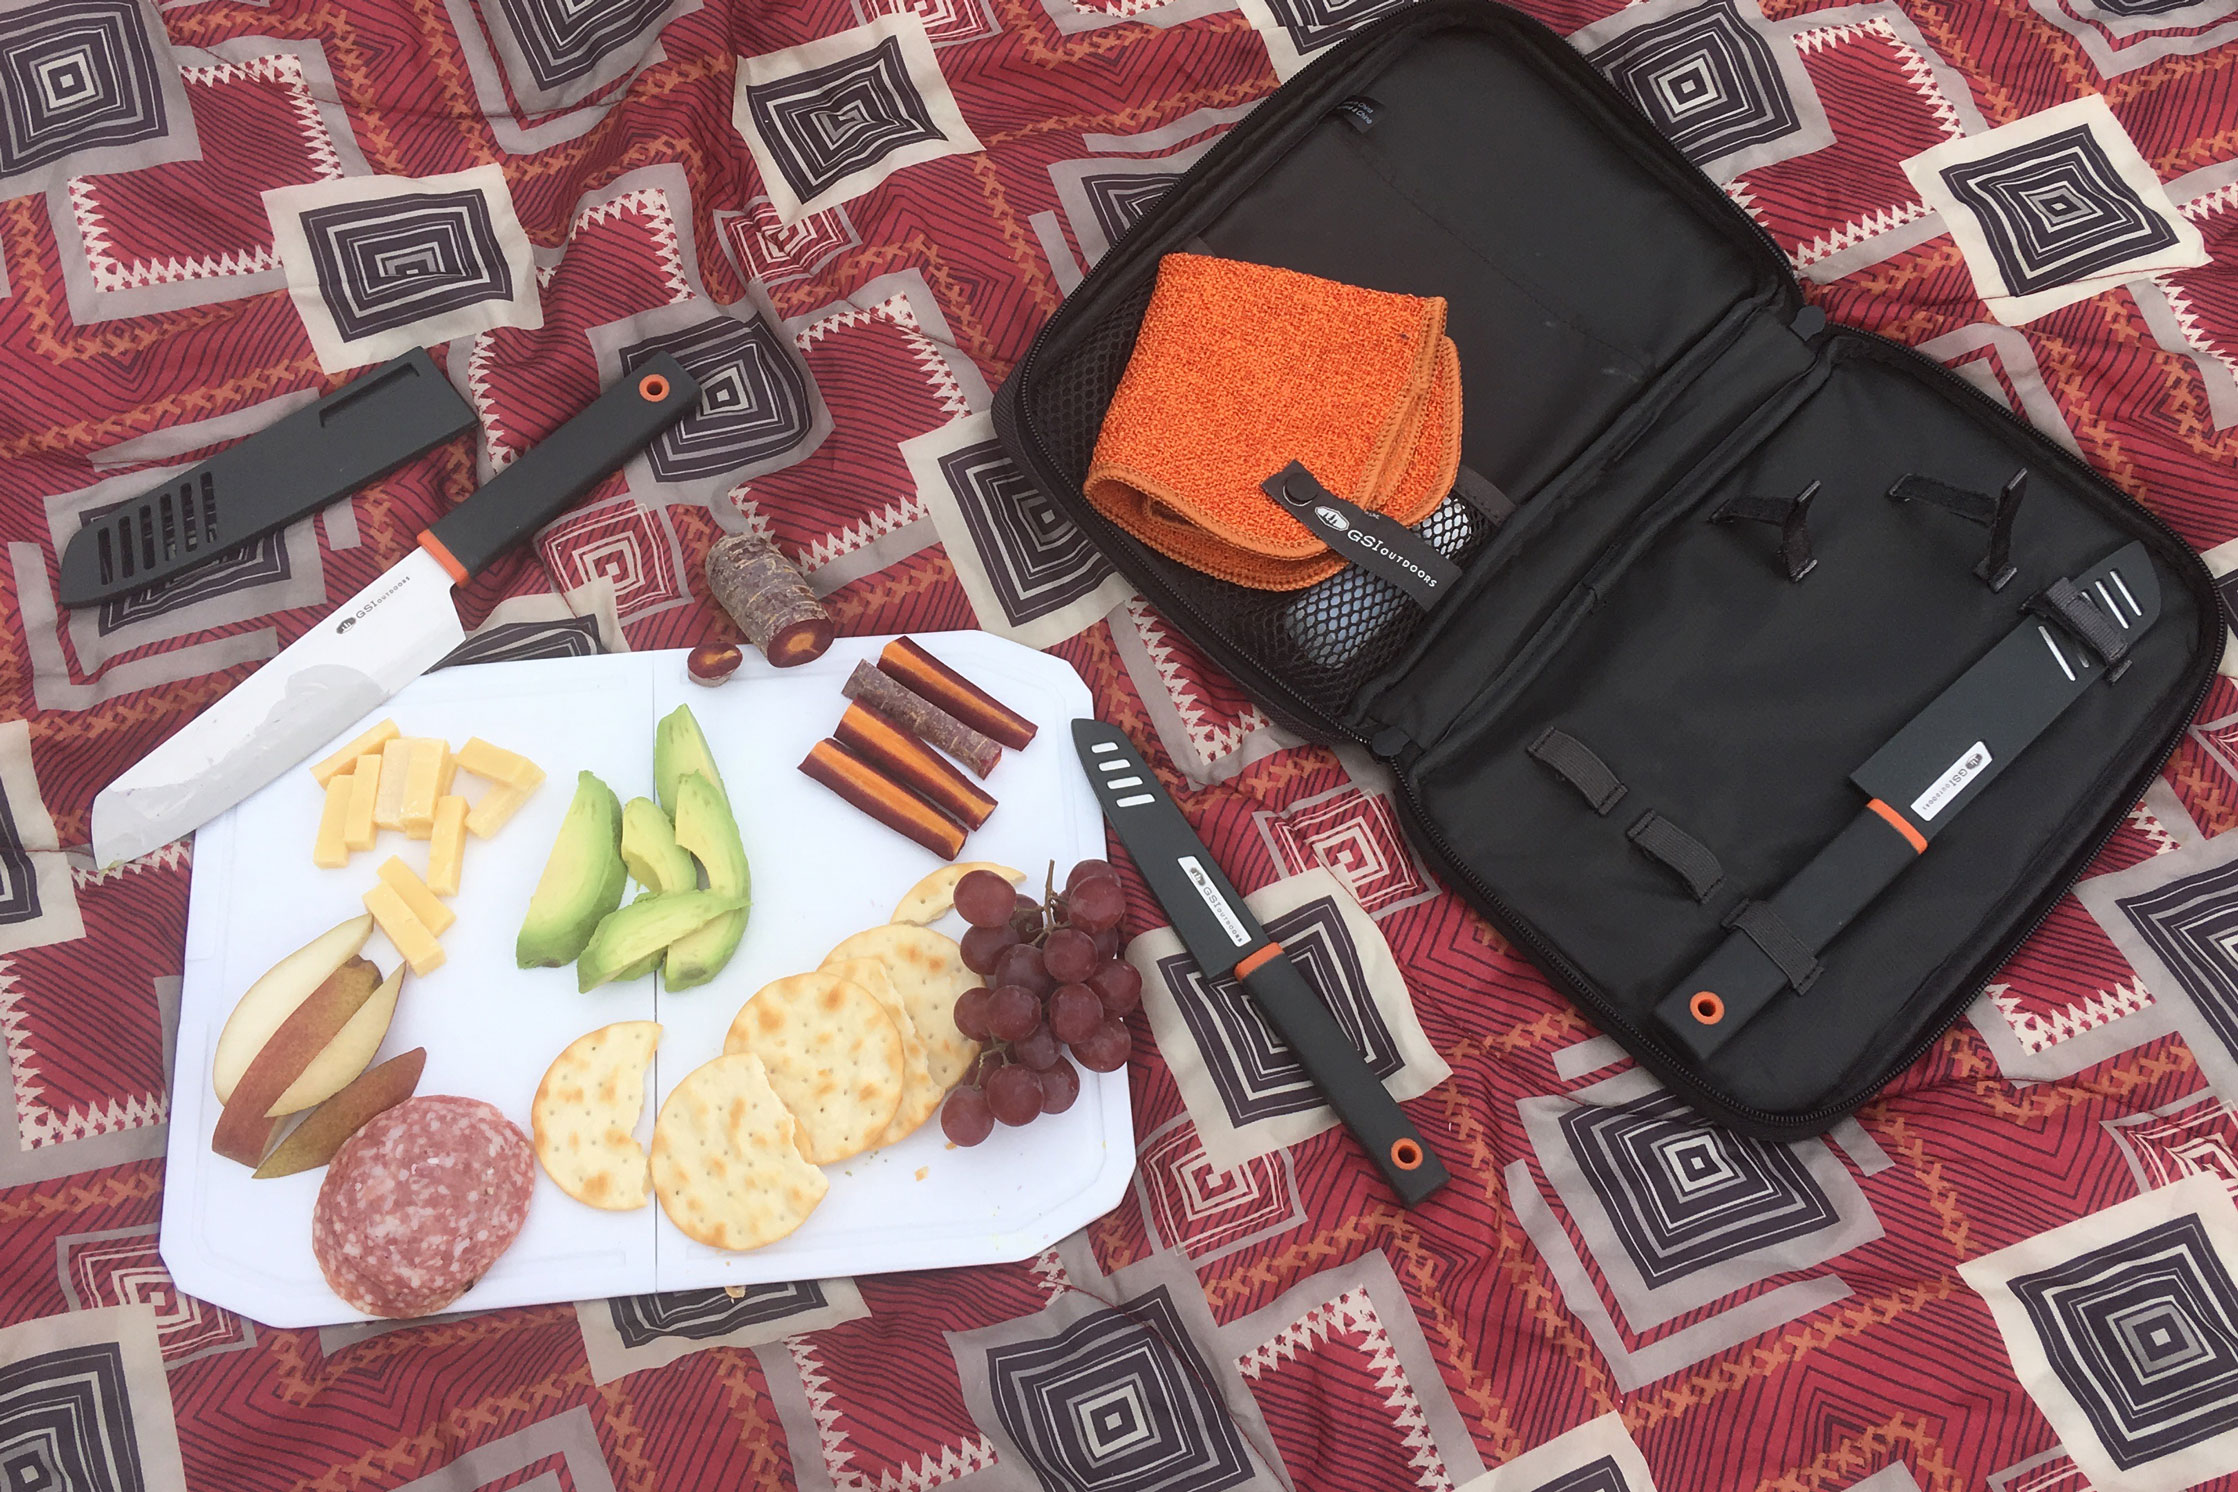 Picnic with GSI Santoku Knife set charcuterie plate